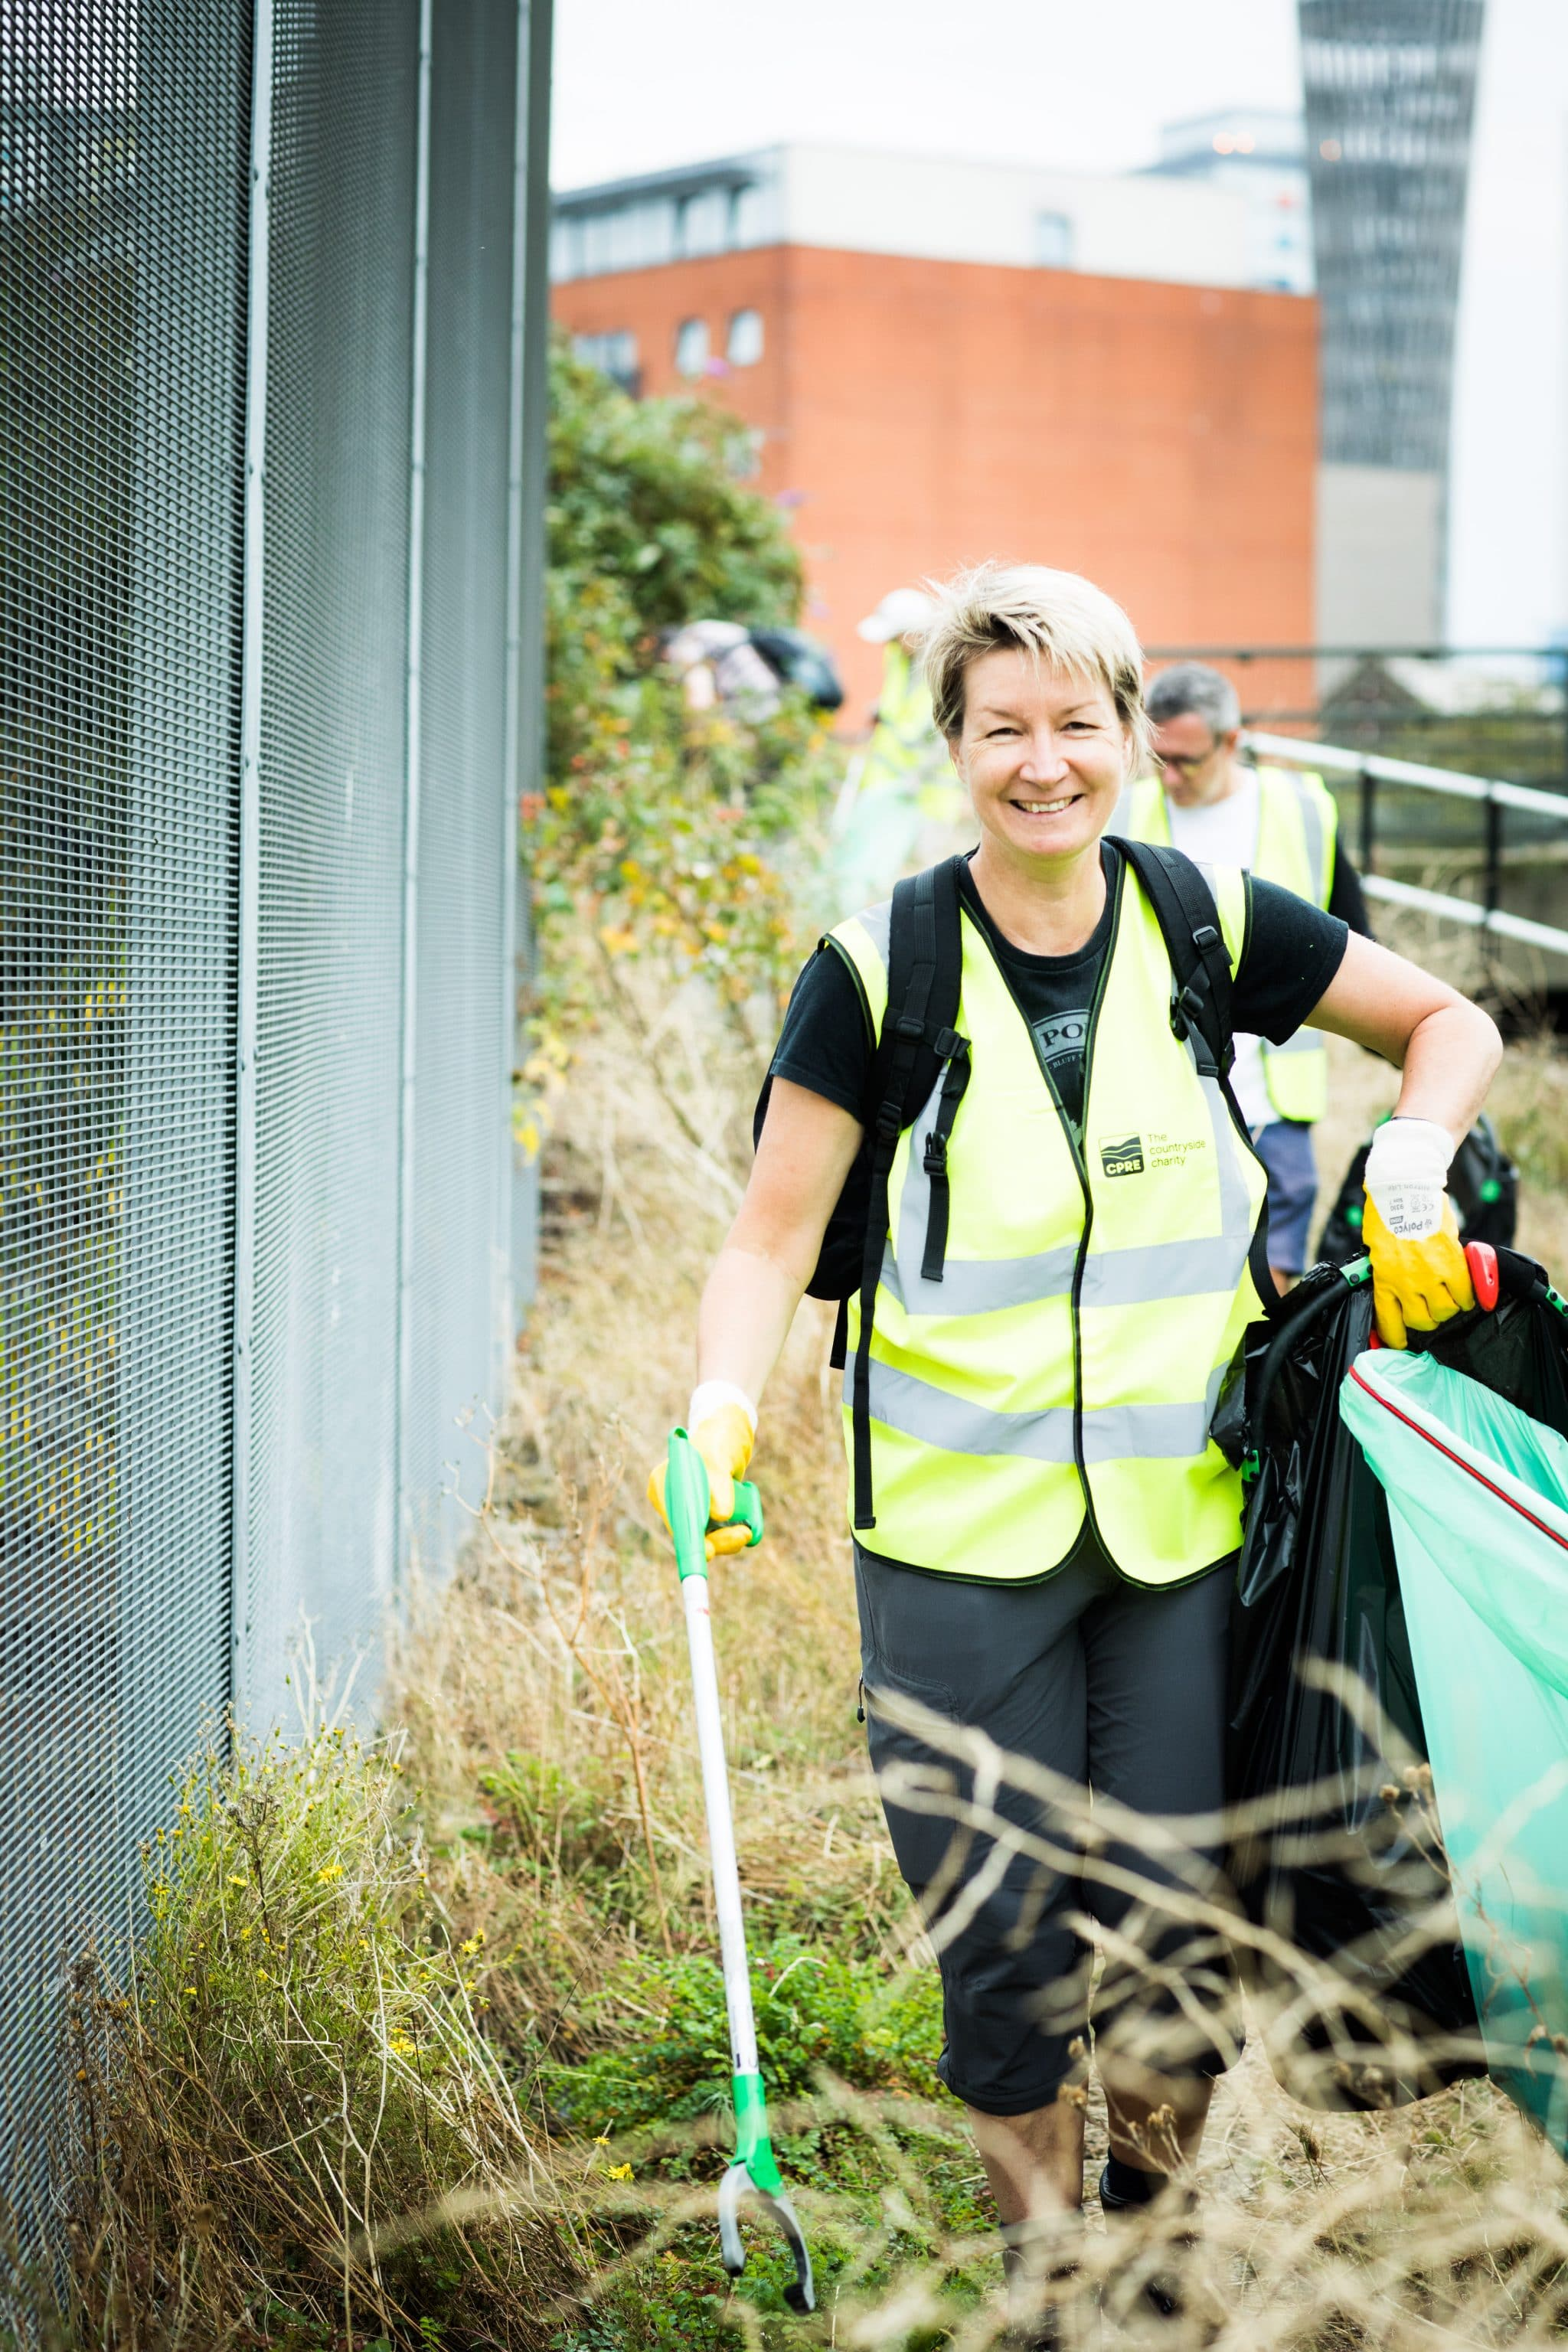 Blonde happy woman litter picking wearing hi vis jacket